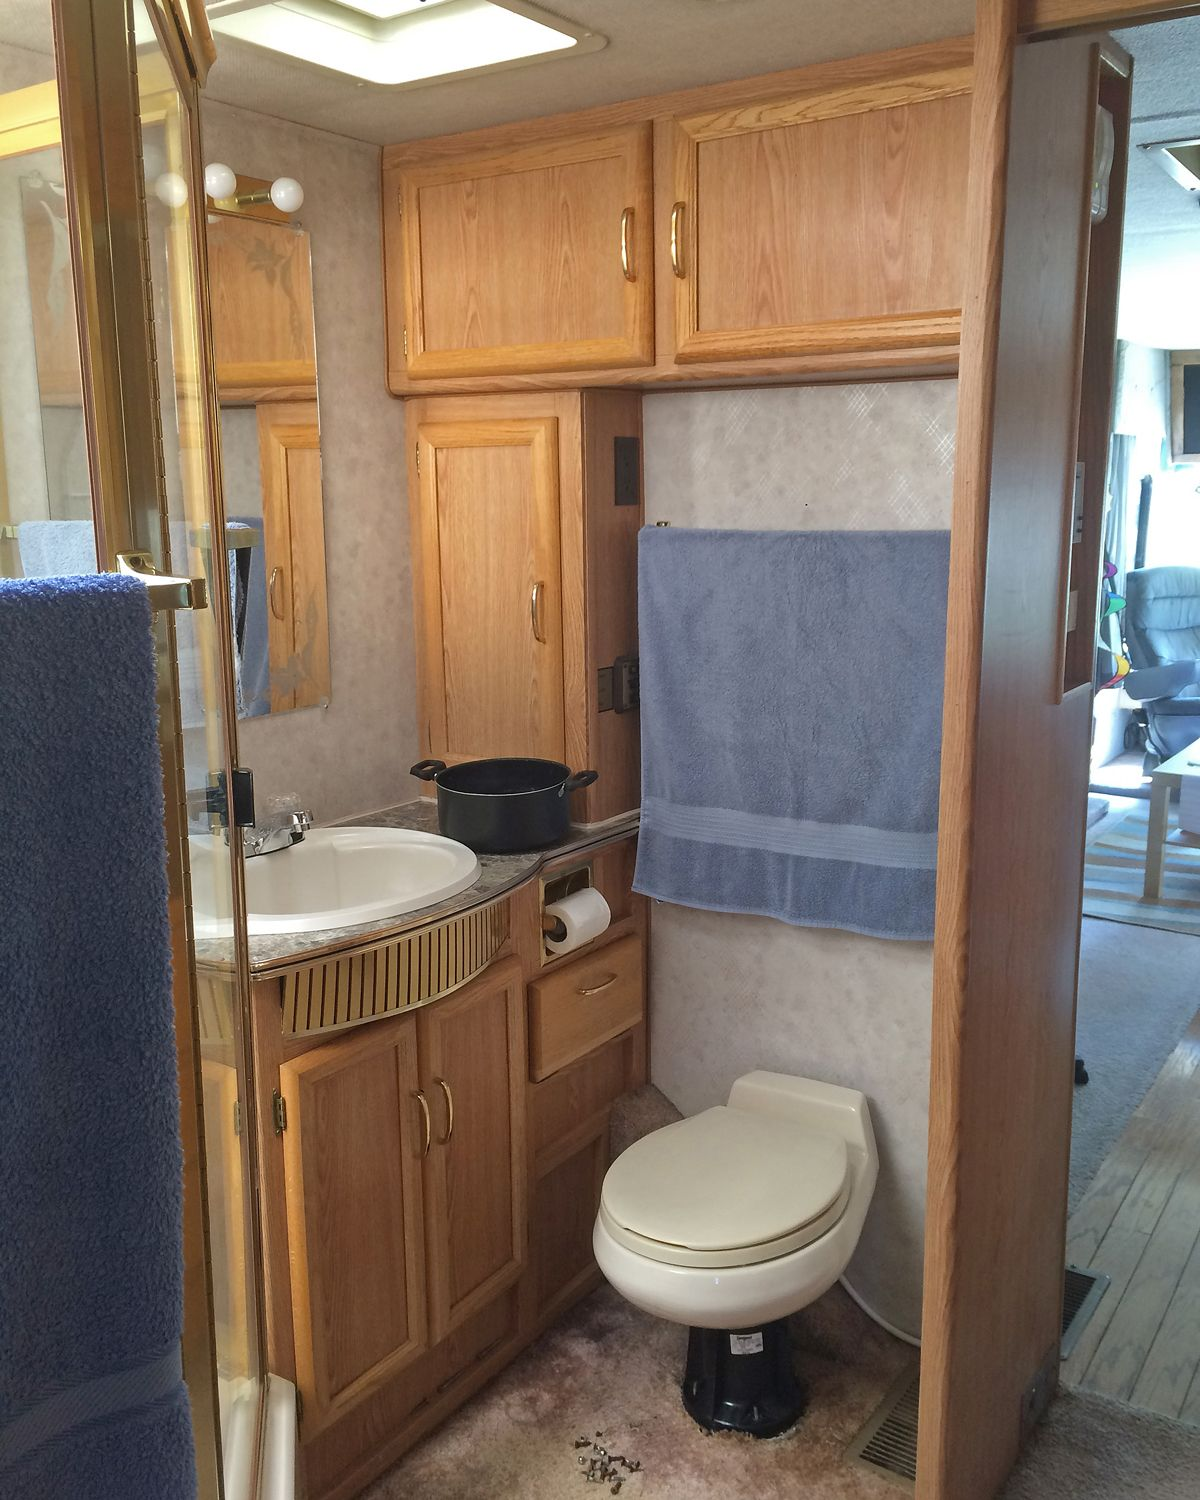 The bathroom was probably the biggest disaster we were dealing with on replacement rv furniture, replacement rv tubs, replacement rv awning, replacement rv light fixtures, replacement rv couch, replacement rv mirror, replacement rv table, replacement rv curtains, replacement rv stove, replacement rv tv, replacement rv toilets, replacement rv kitchen faucet, replacement rv fridge, replacement rv carpet, replacement rv cabinets, replacement rv showers, replacement rv doors,